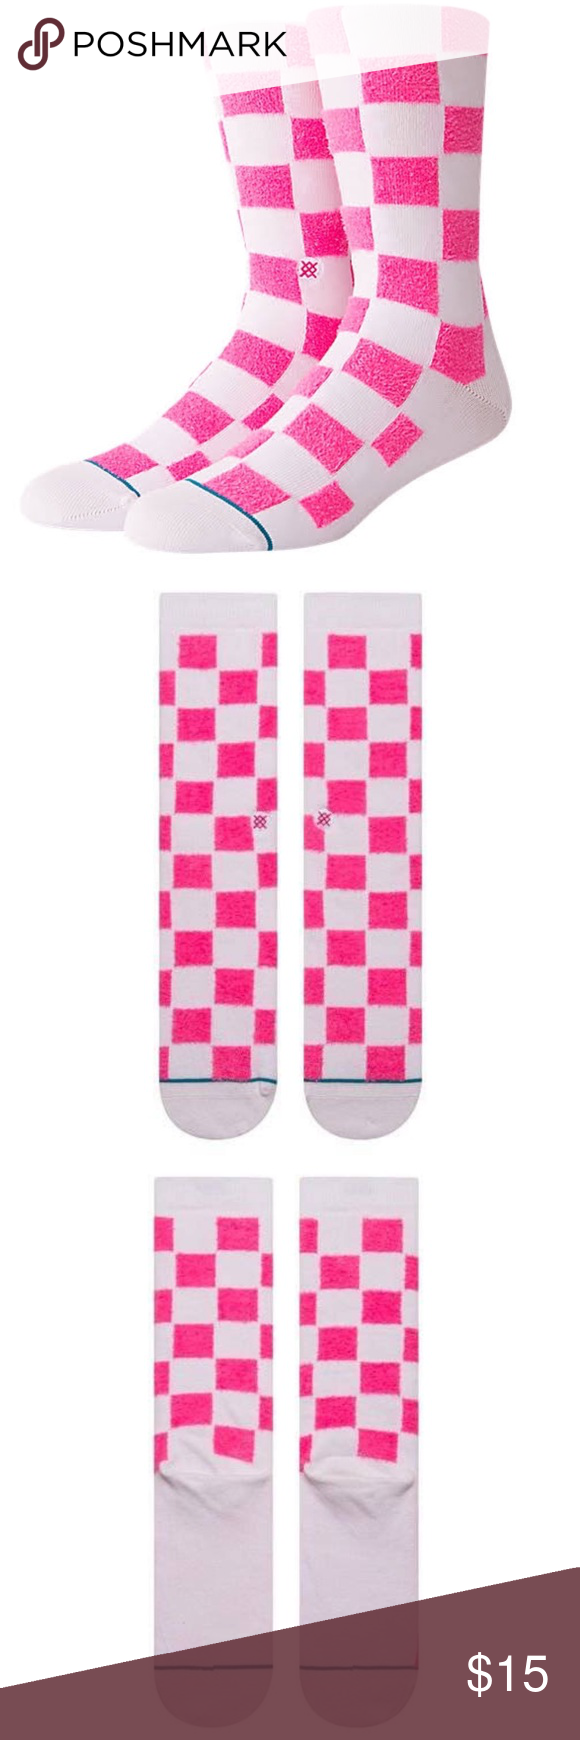 """NWT Stance Men's """"Blokz"""" Checkered Socks NEW WITH TAGS"""